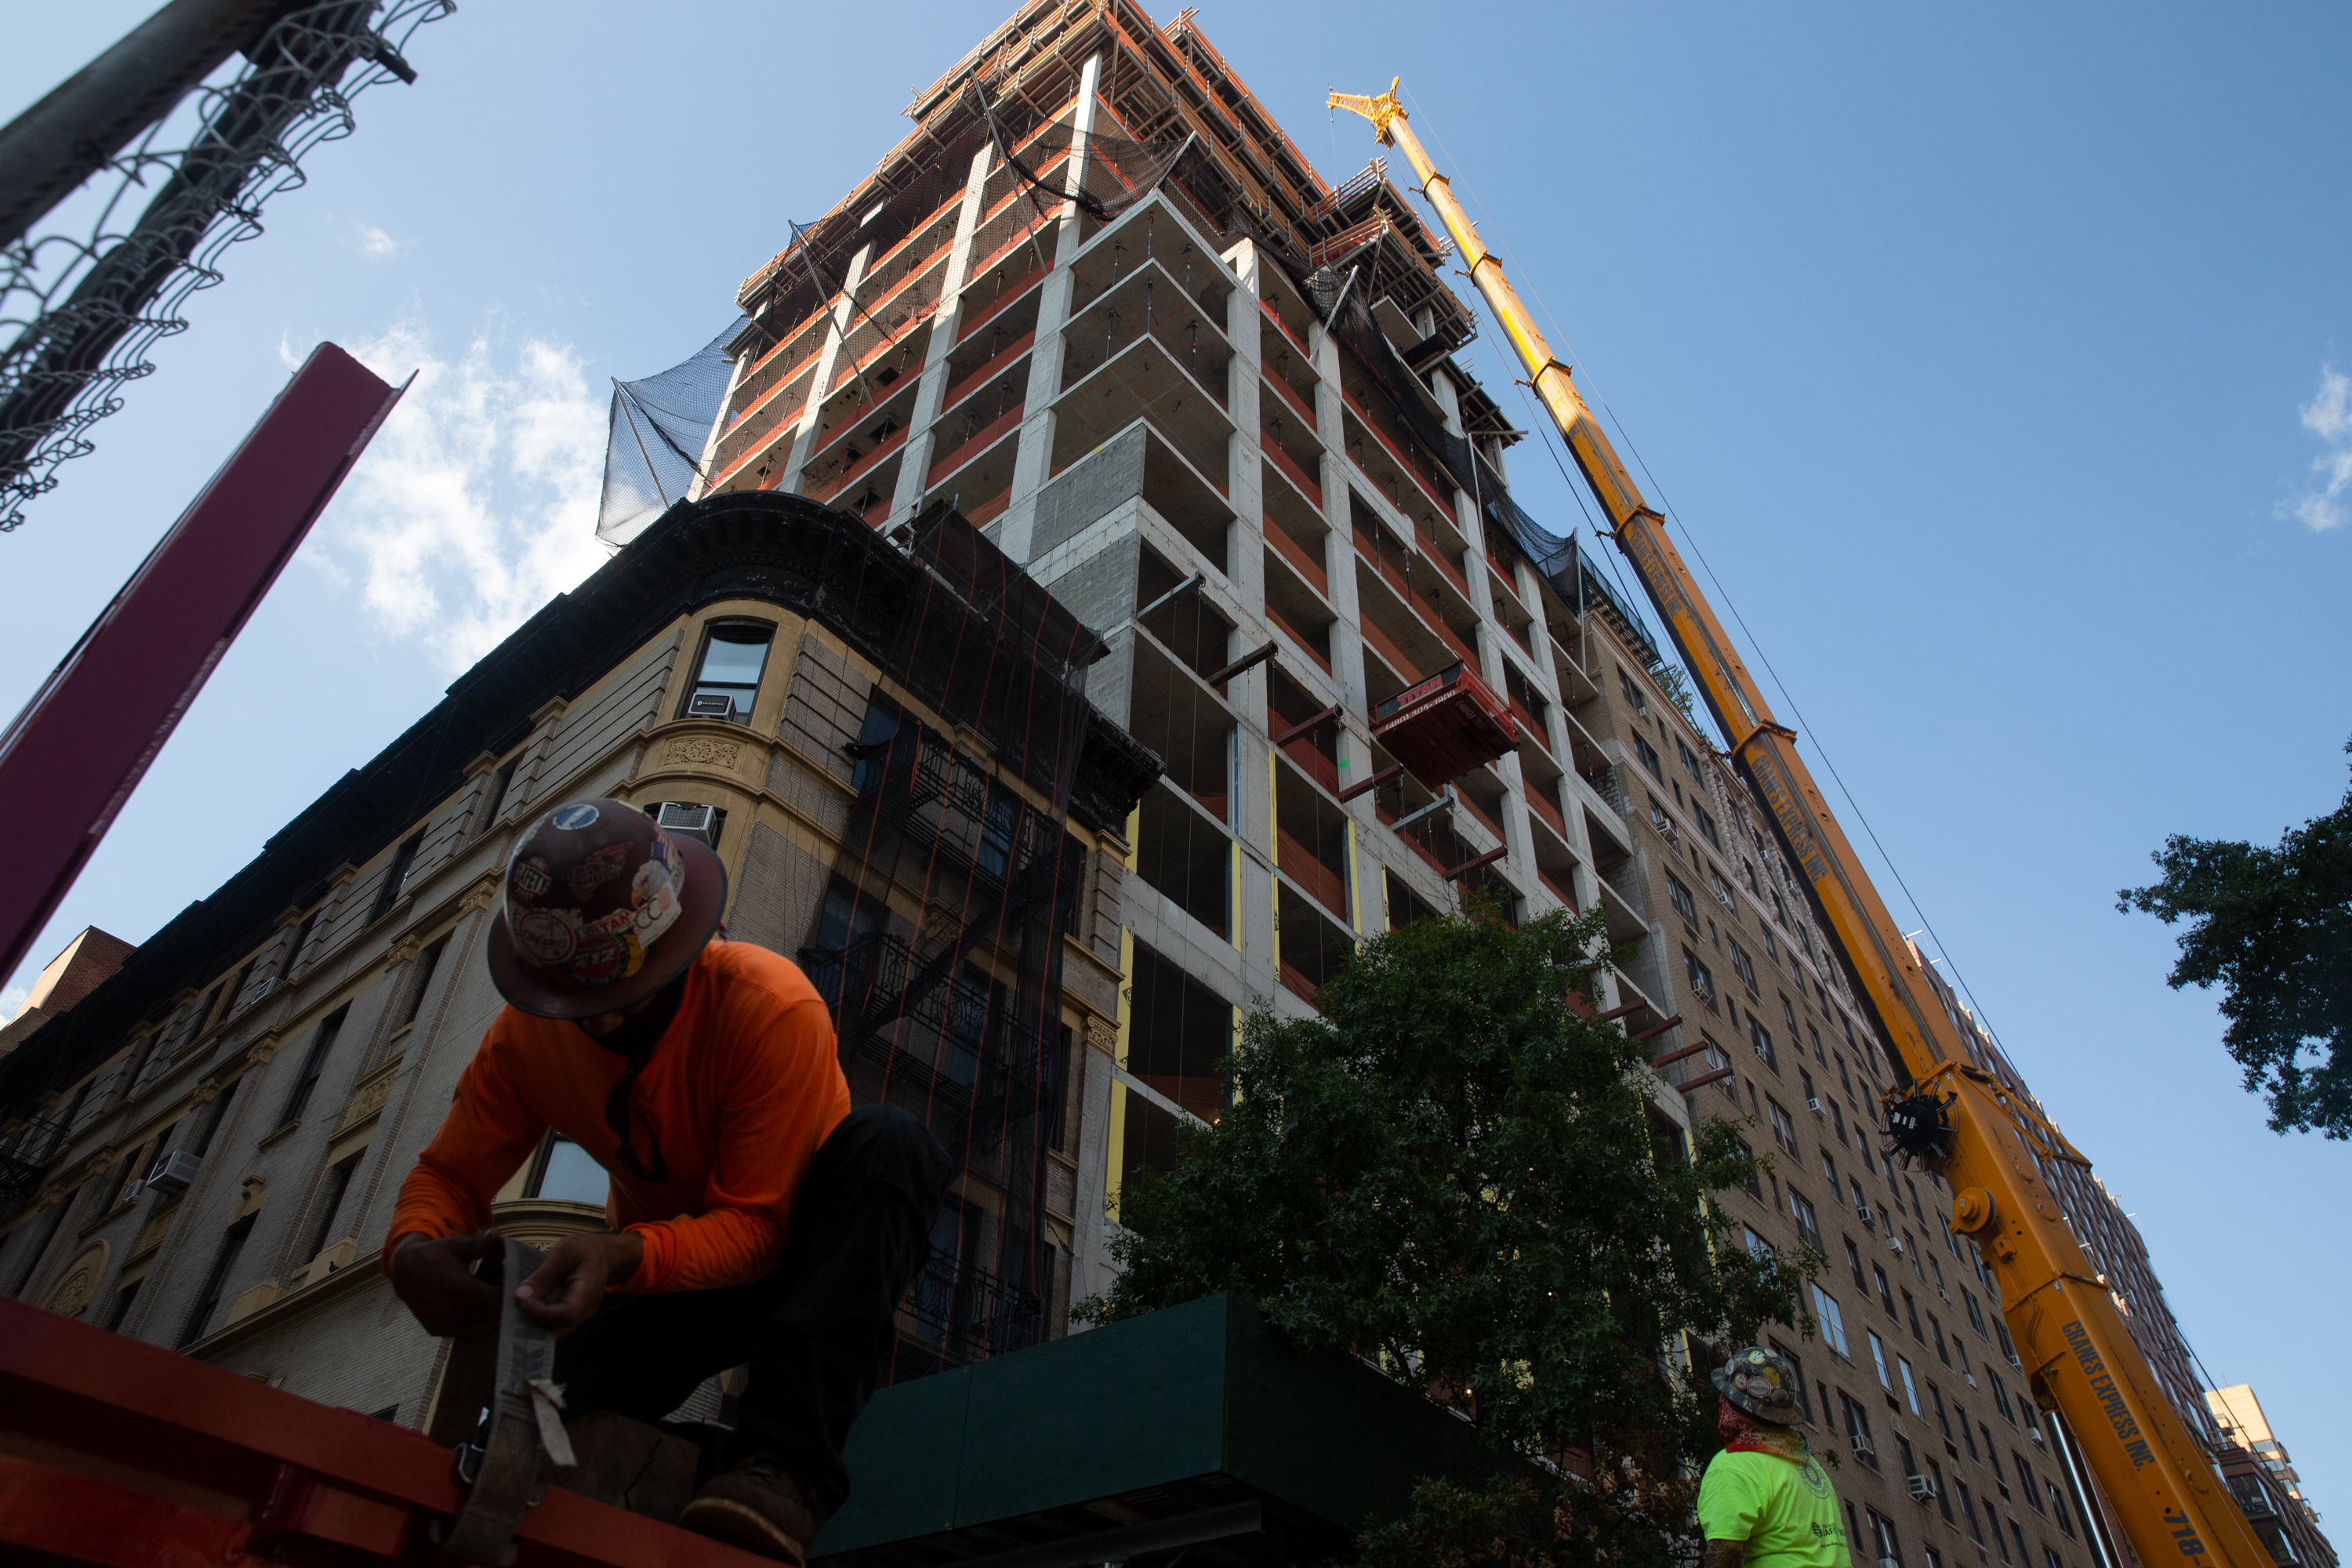 Construction workers help build a new development on the Upper West Side, Sept. 23, 2020.